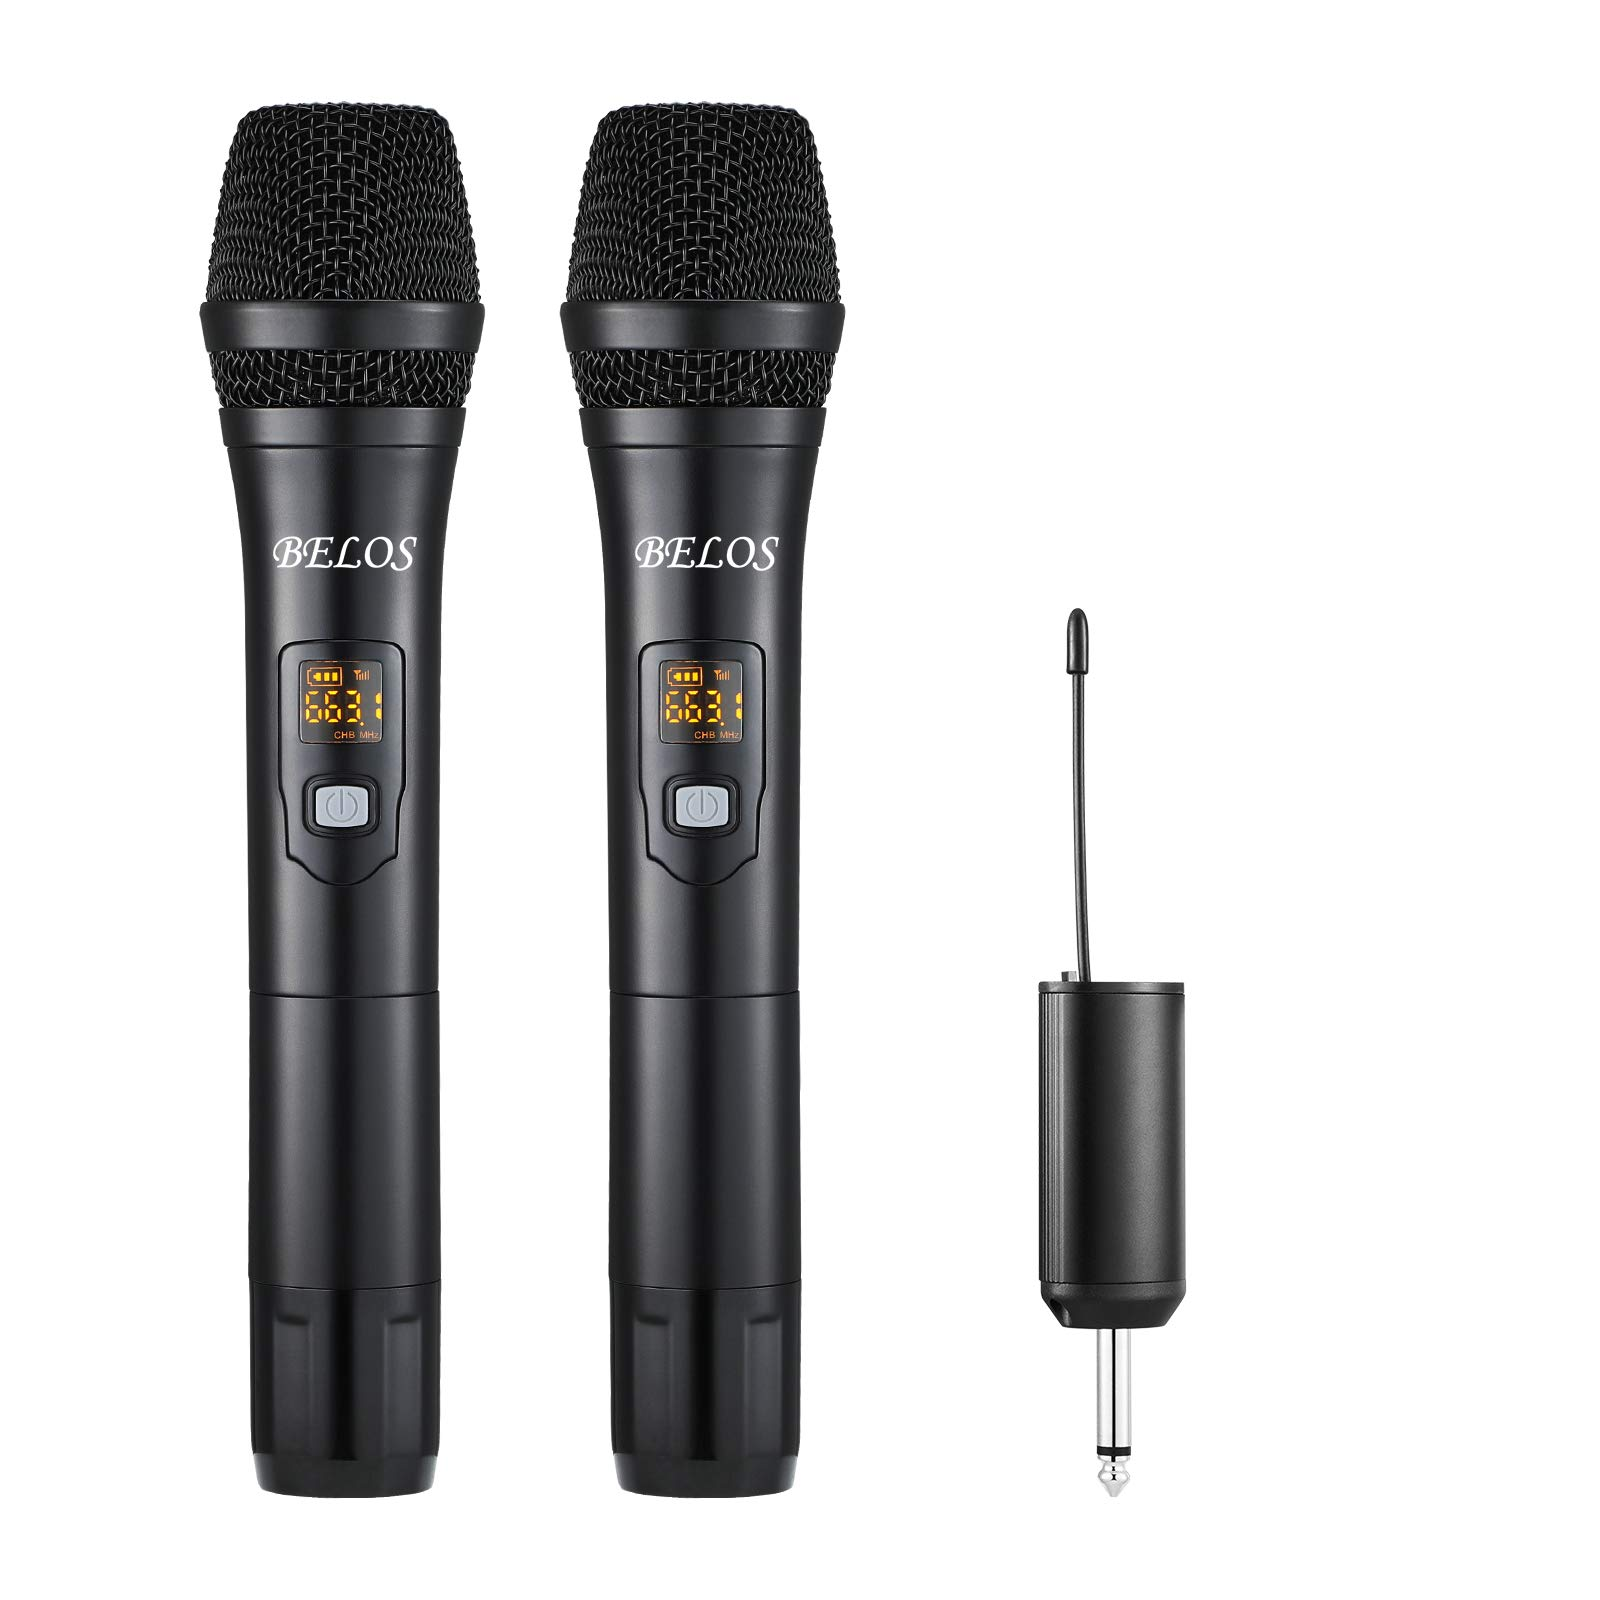 BELOS Wireless Microphone, UHF Cordless Dual Handheld Dynamic Mic System Set with Rechargeable Receiver, 165 ft Range, 6.35mm(1/4'') Plug, for Karaoke, Voice Amplifier, PA System, Singing Machine, DJ